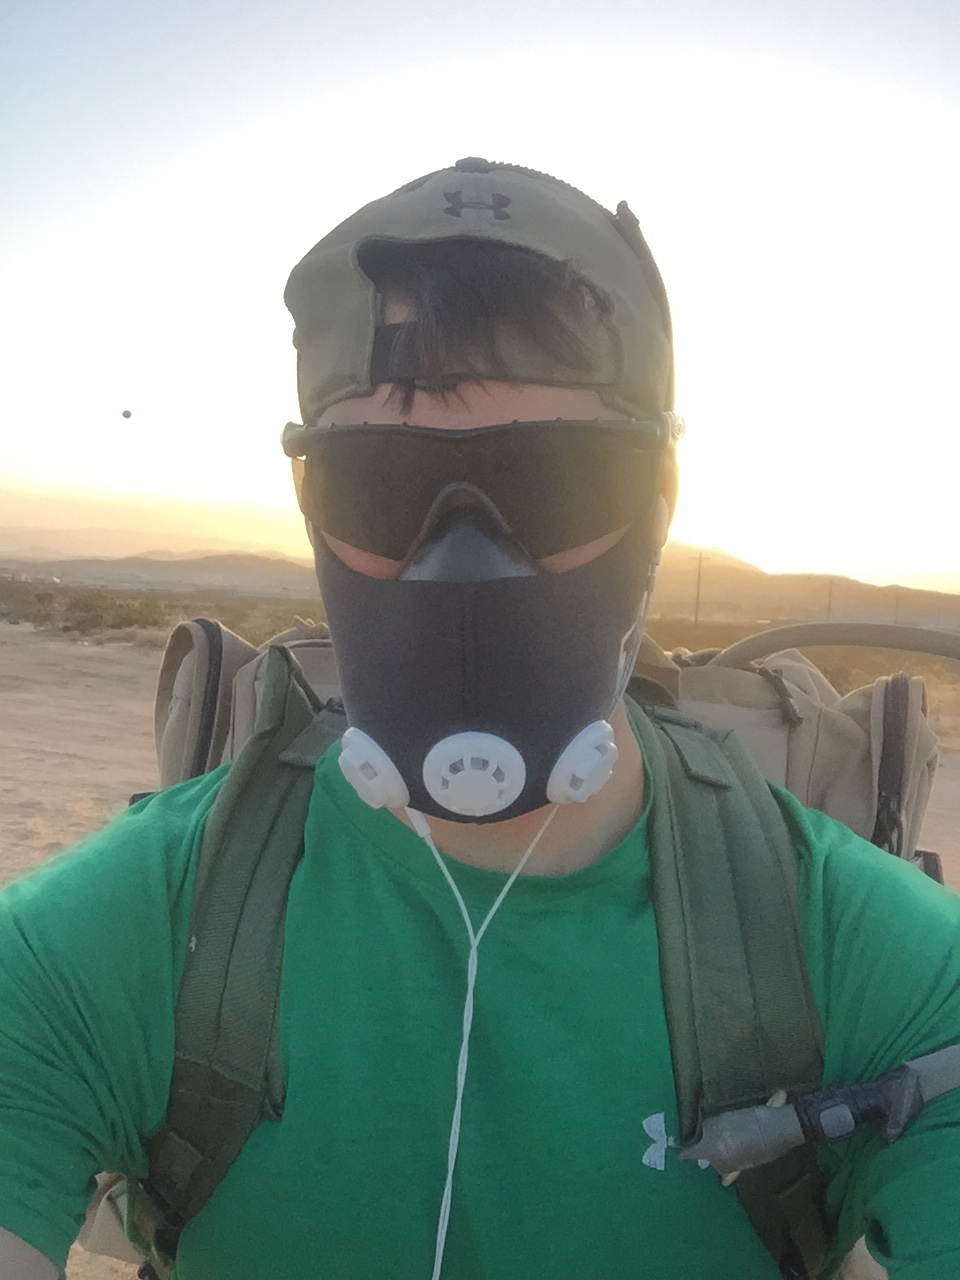 6 mile ruck up tv hill w/elevation mask    3x5 snatch @70%    4rds  400m run  15 dips  20 50lb kettlebell swings